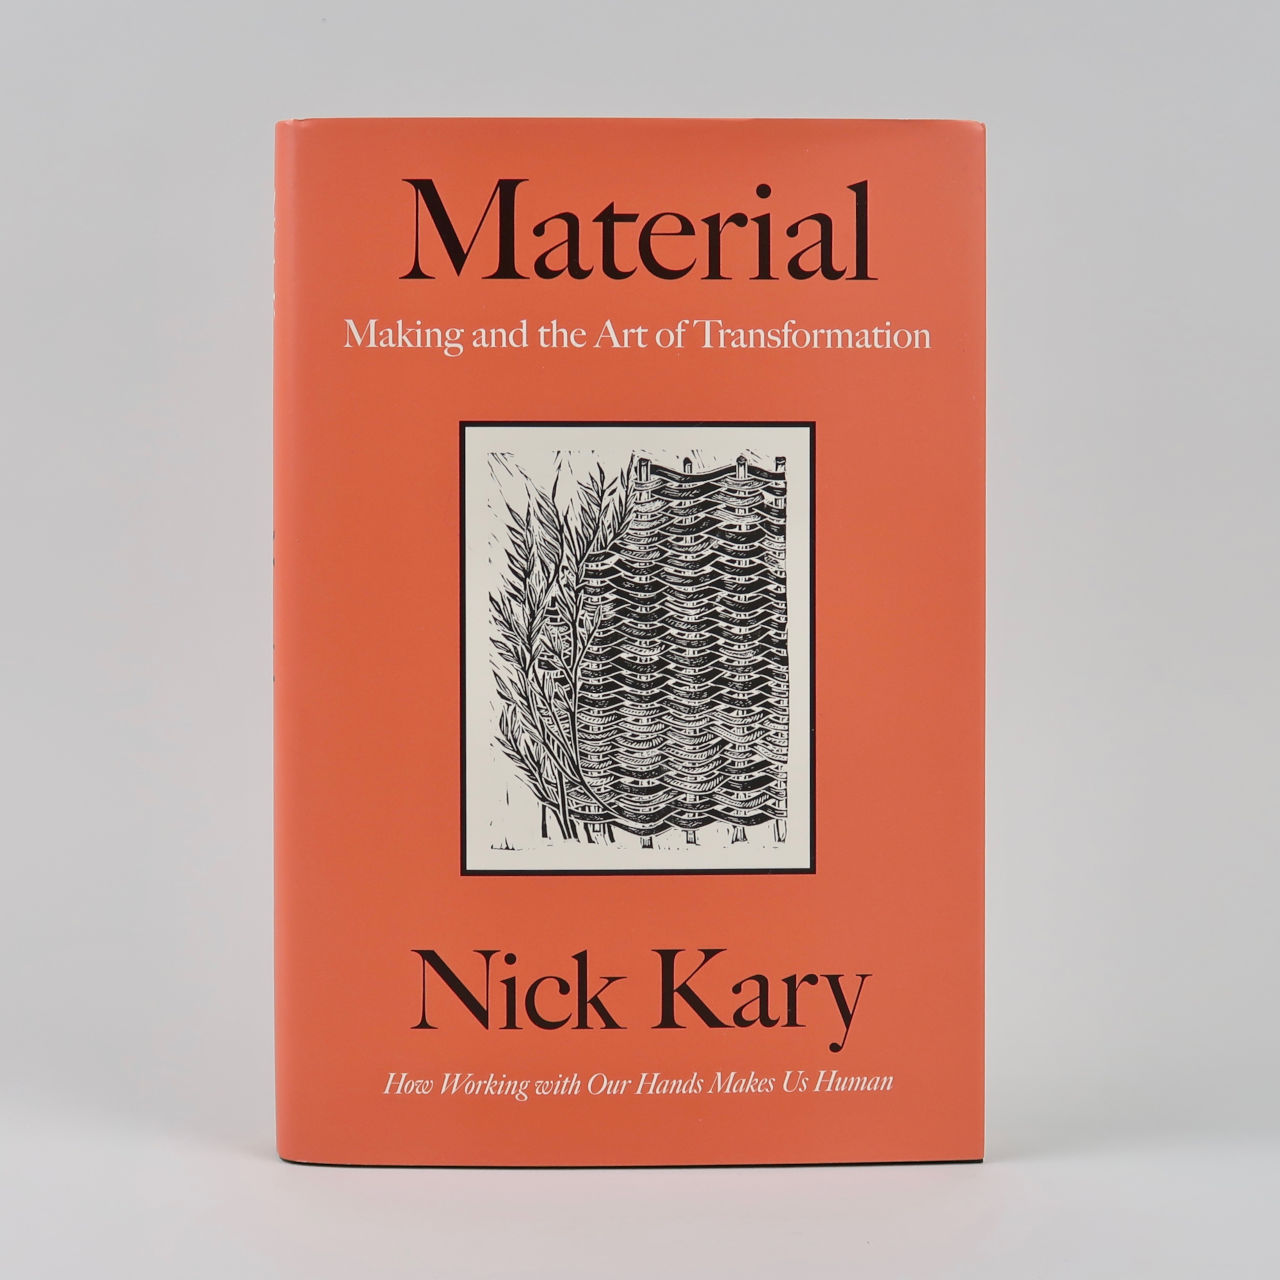 Material: Making and the Art of Transformation - Nick Kary